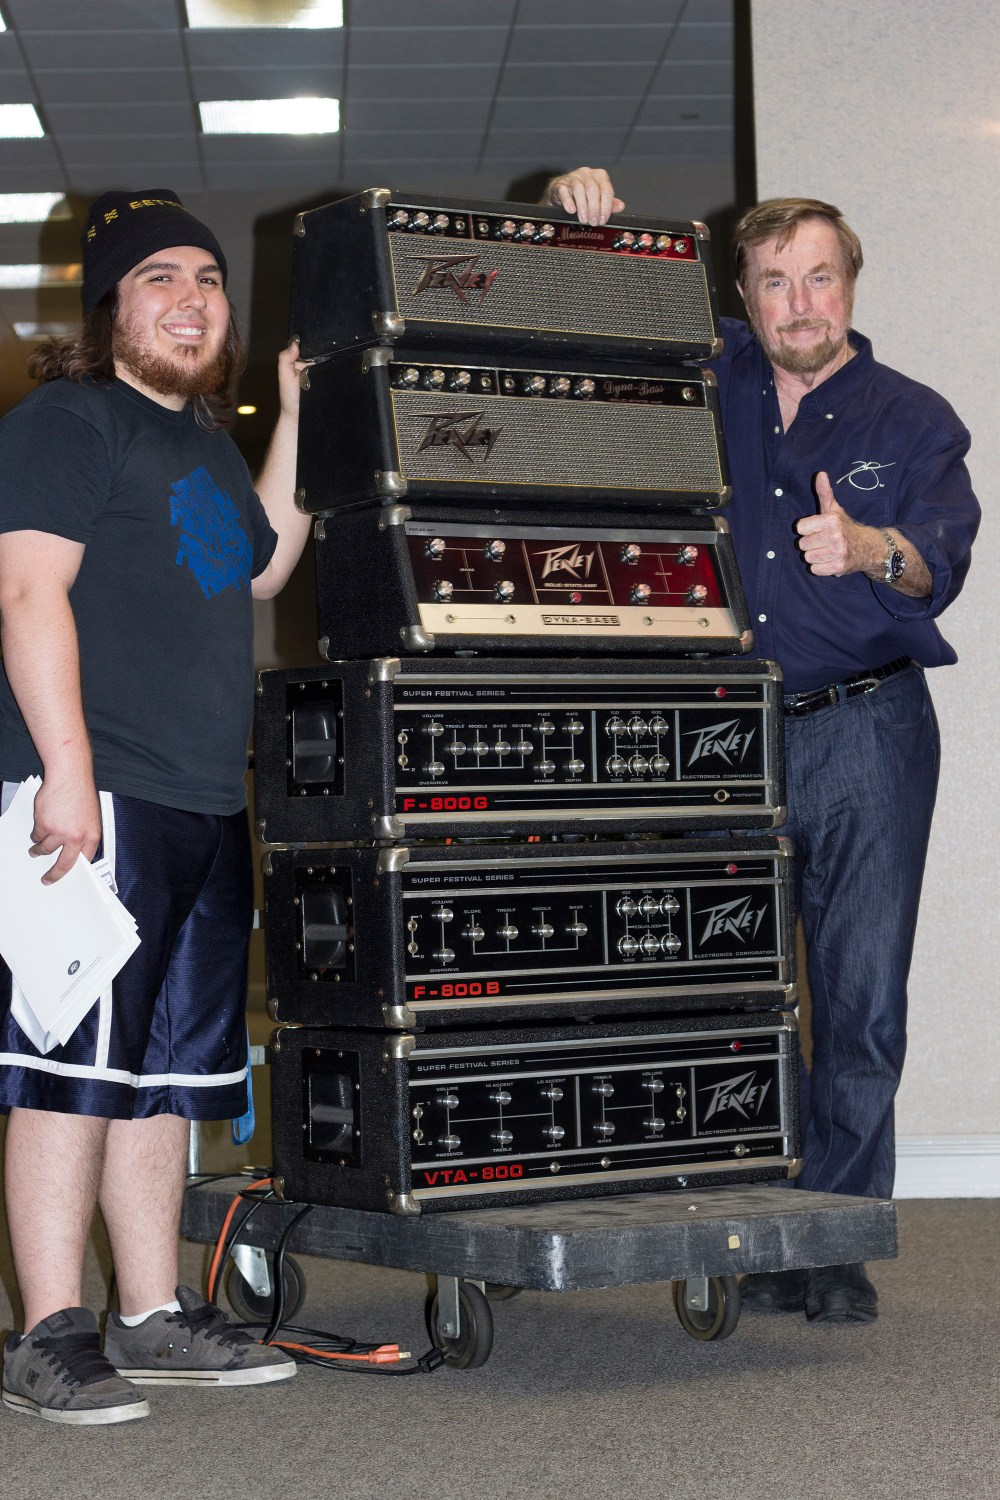 Derrick Cook and Hartley Peavey